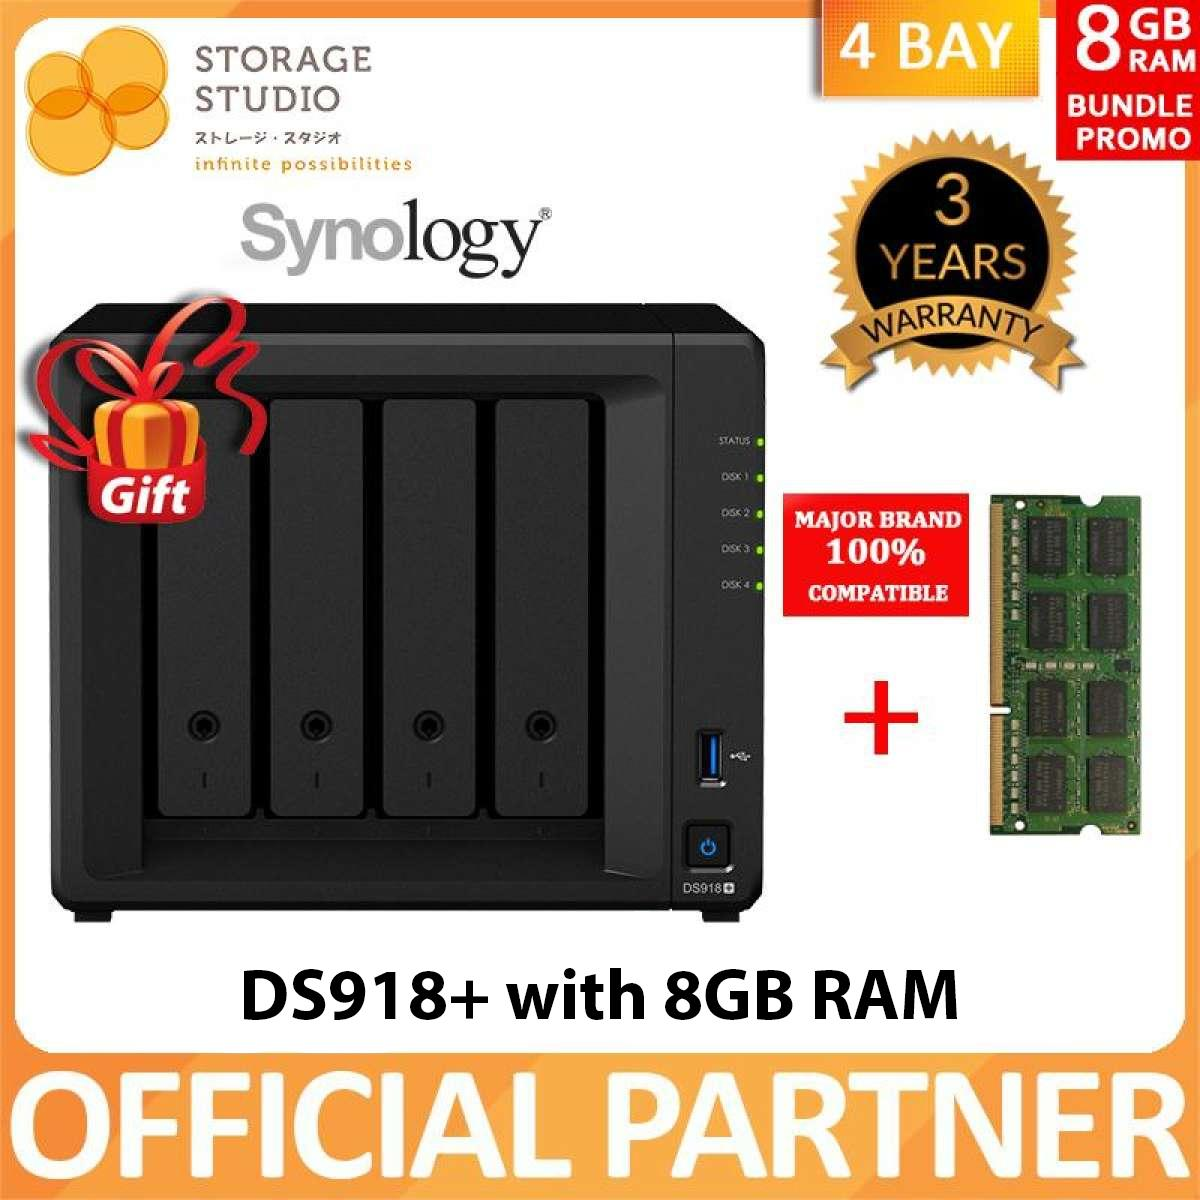 Synology 4 Bay Nas Ds918+ With 8gb Memory. Local Warranty 3 Years. Award Winning Product. ** Synology Official Partner ** By Storage Studio (s) Pte Ltd.